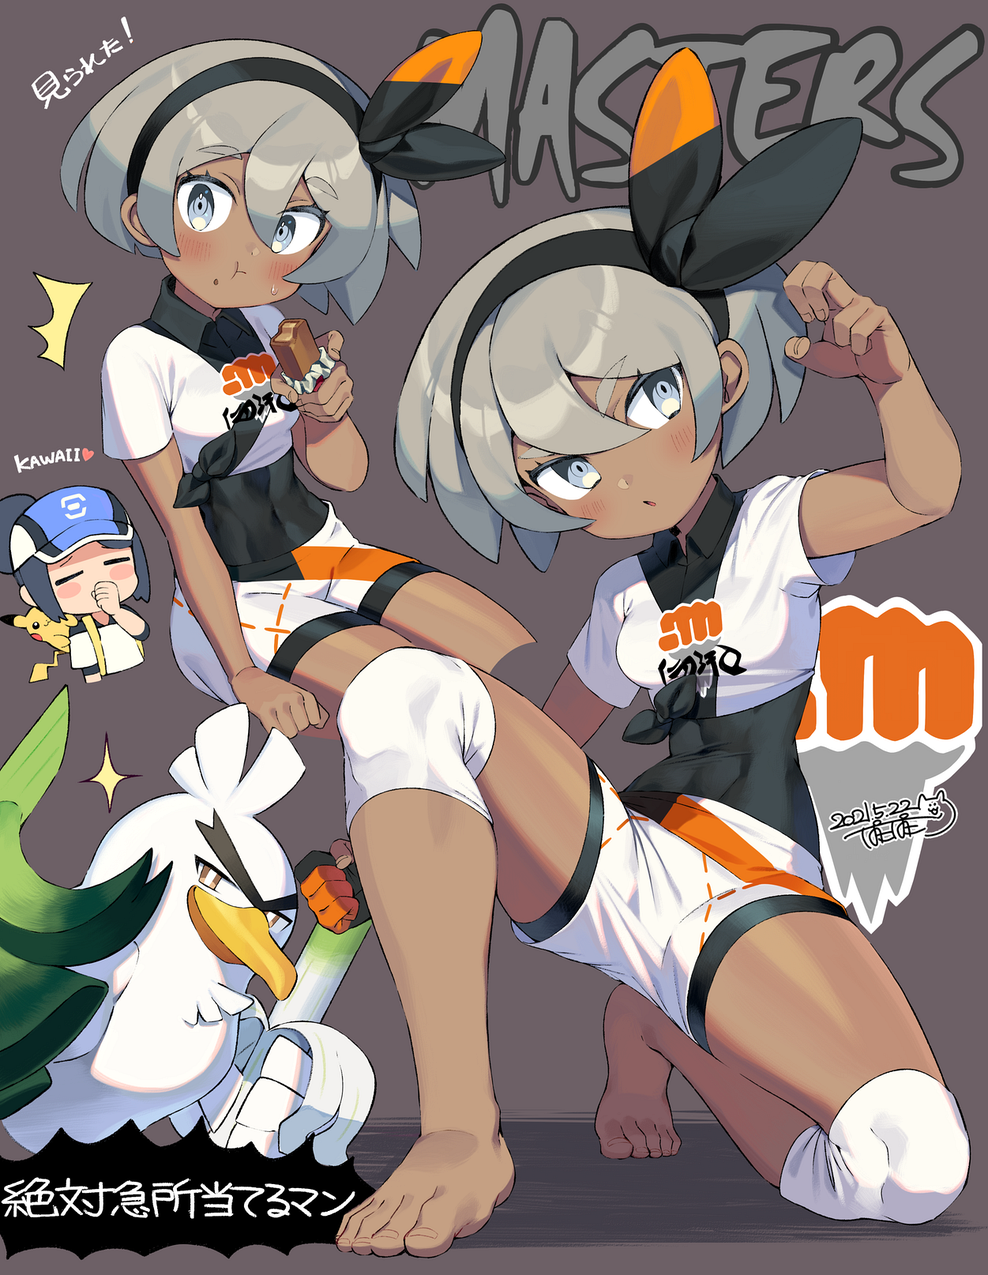 2girls :3 :o :t ^^^ bangs barefoot baseball_cap bea_(pokemon) beak bettie_(pokemon) bird black_bodysuit black_gloves black_hair black_hairband blue_headwear blush blush_stickers bodysuit bodysuit_under_clothes bow_hairband breasts candy candy_bar chibi chibi_inset chocolate clenched_hand closed_eyes closed_mouth collared_shirt commentary_request copyright_name covered_navel dark-skinned_female dark_skin dated duck eating english_text eyebrows_visible_through_hair feet fighting_stance fingernails food food_on_face gen_1_pokemon gen_8_pokemon gloves grey_background grey_eyes grey_hair gym_leader hair_between_eyes hairband hand_up hat heart highres holding holding_food holding_spring_onion holding_vegetable invisible_chair iroyopon knee_pads looking_to_the_side multiple_girls multiple_views on_shoulder one_knee partially_fingerless_gloves pikachu pokemon pokemon_(creature) pokemon_(game) pokemon_masters_ex pokemon_on_shoulder pokemon_swsh print_shirt print_shorts romaji_text shirt short_hair short_sleeves shorts sidelocks signature single_glove sirfetch'd sitting smug sparkle spring_onion sweatdrop tied_shirt toenails toes toned translation_request unibrow vegetable white_shirt white_shorts